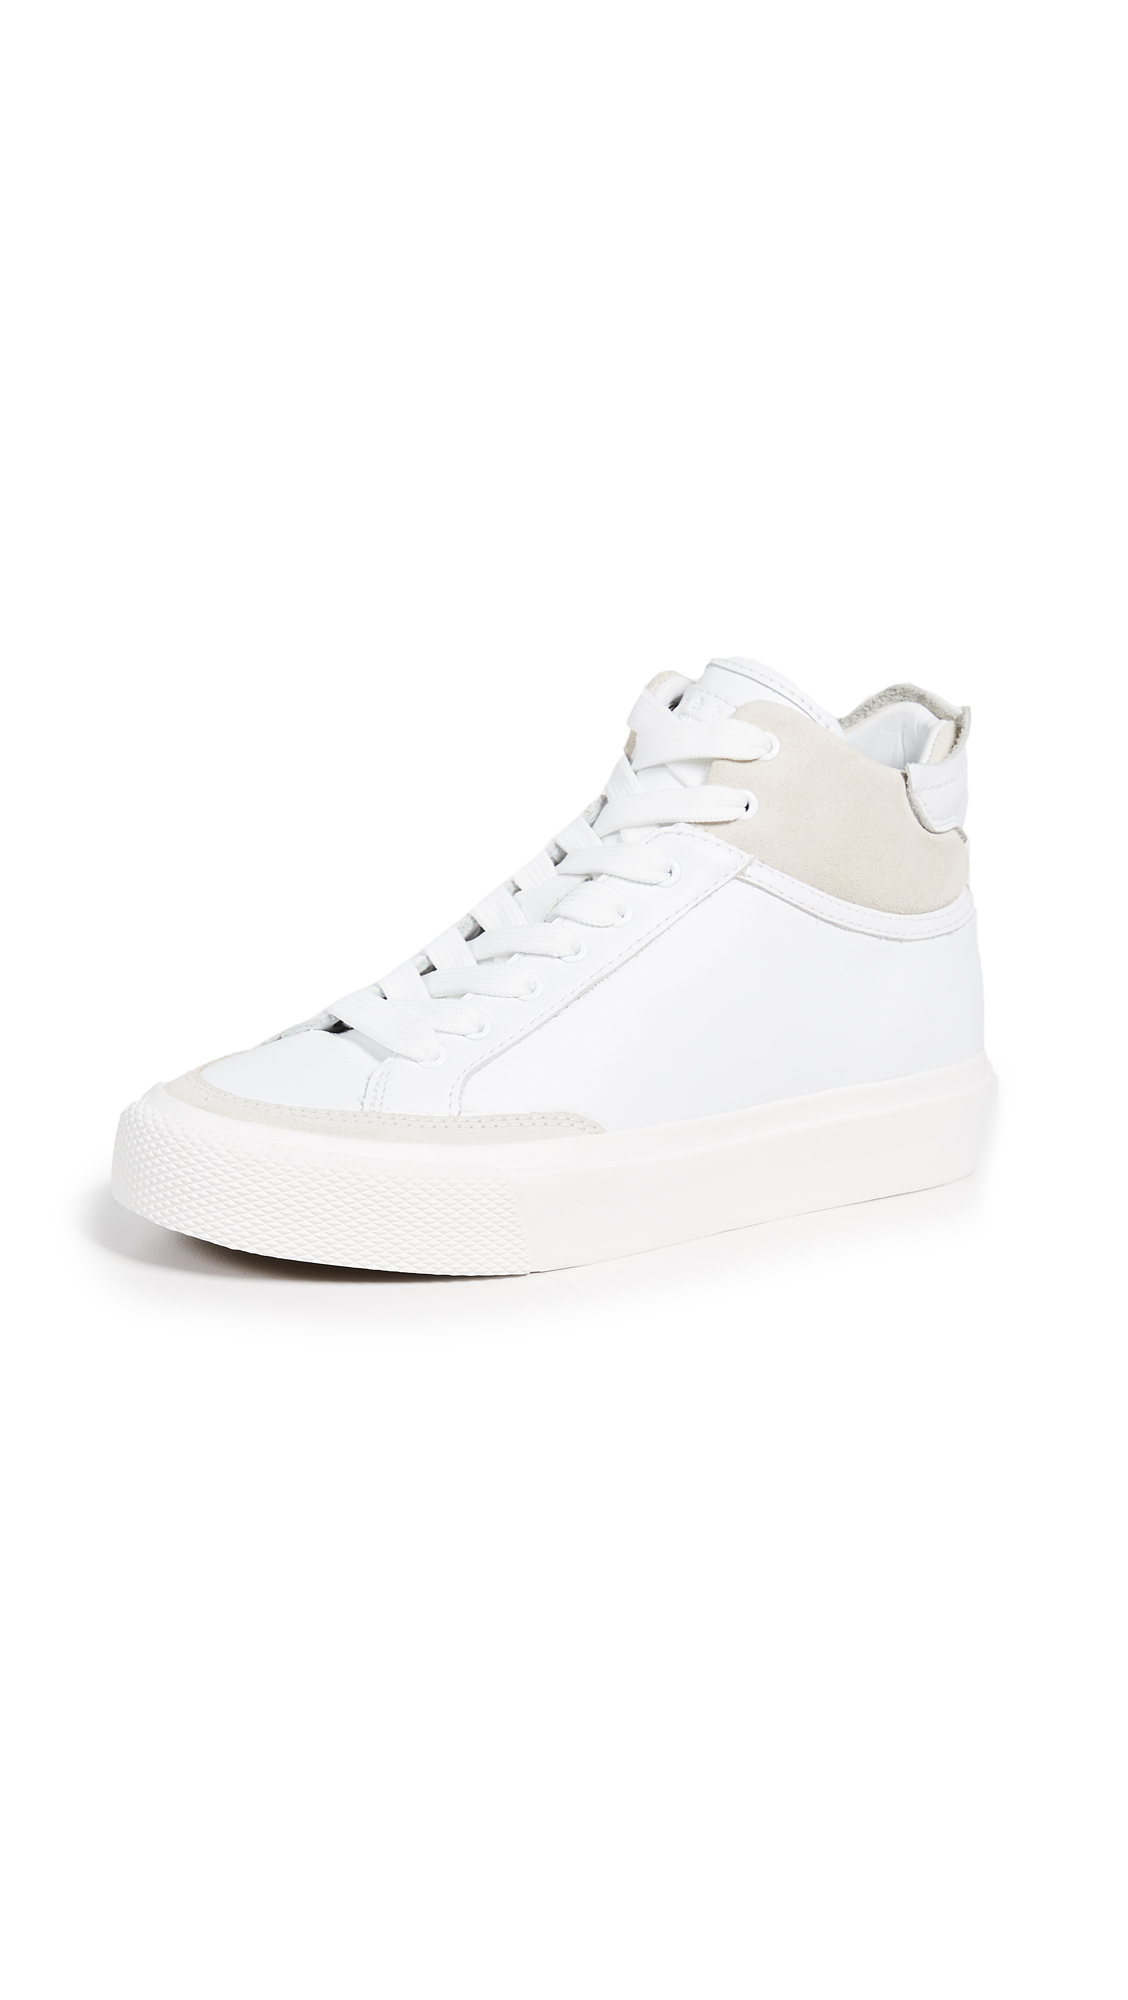 Rag & Bone RB Army High Sneakers - White